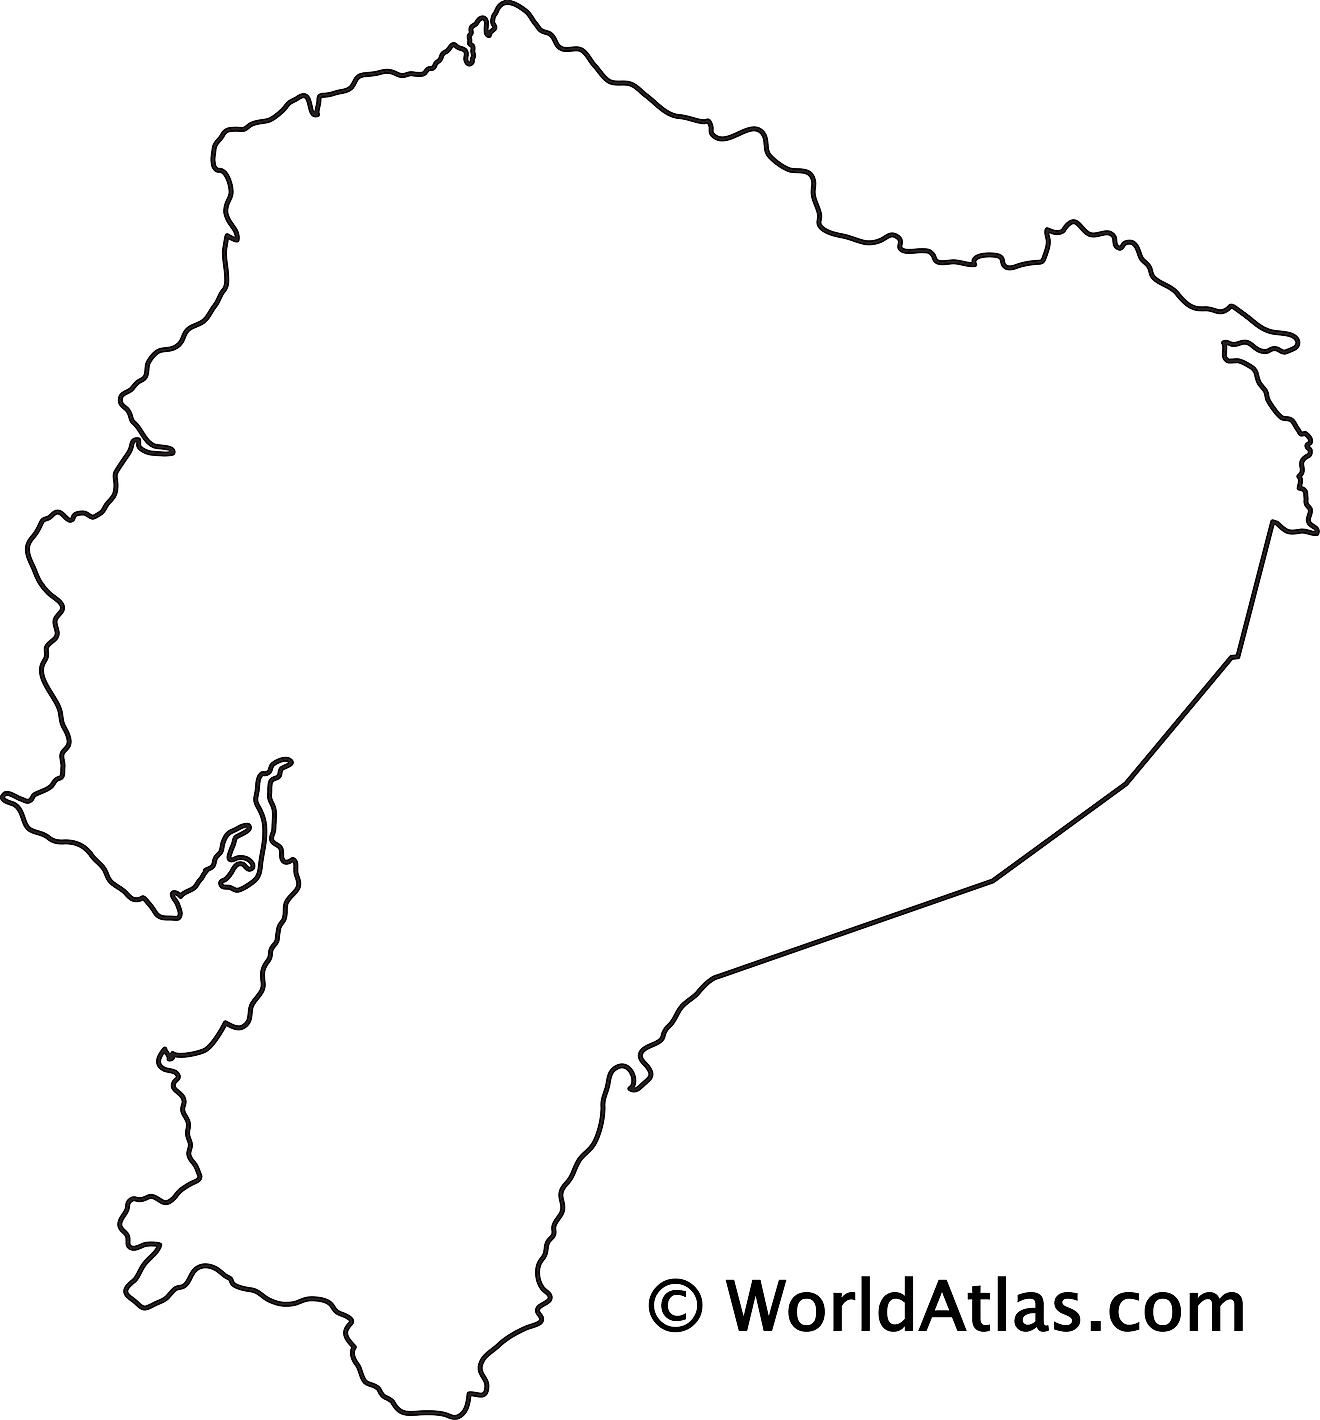 Blank Outline Map of Ecuador